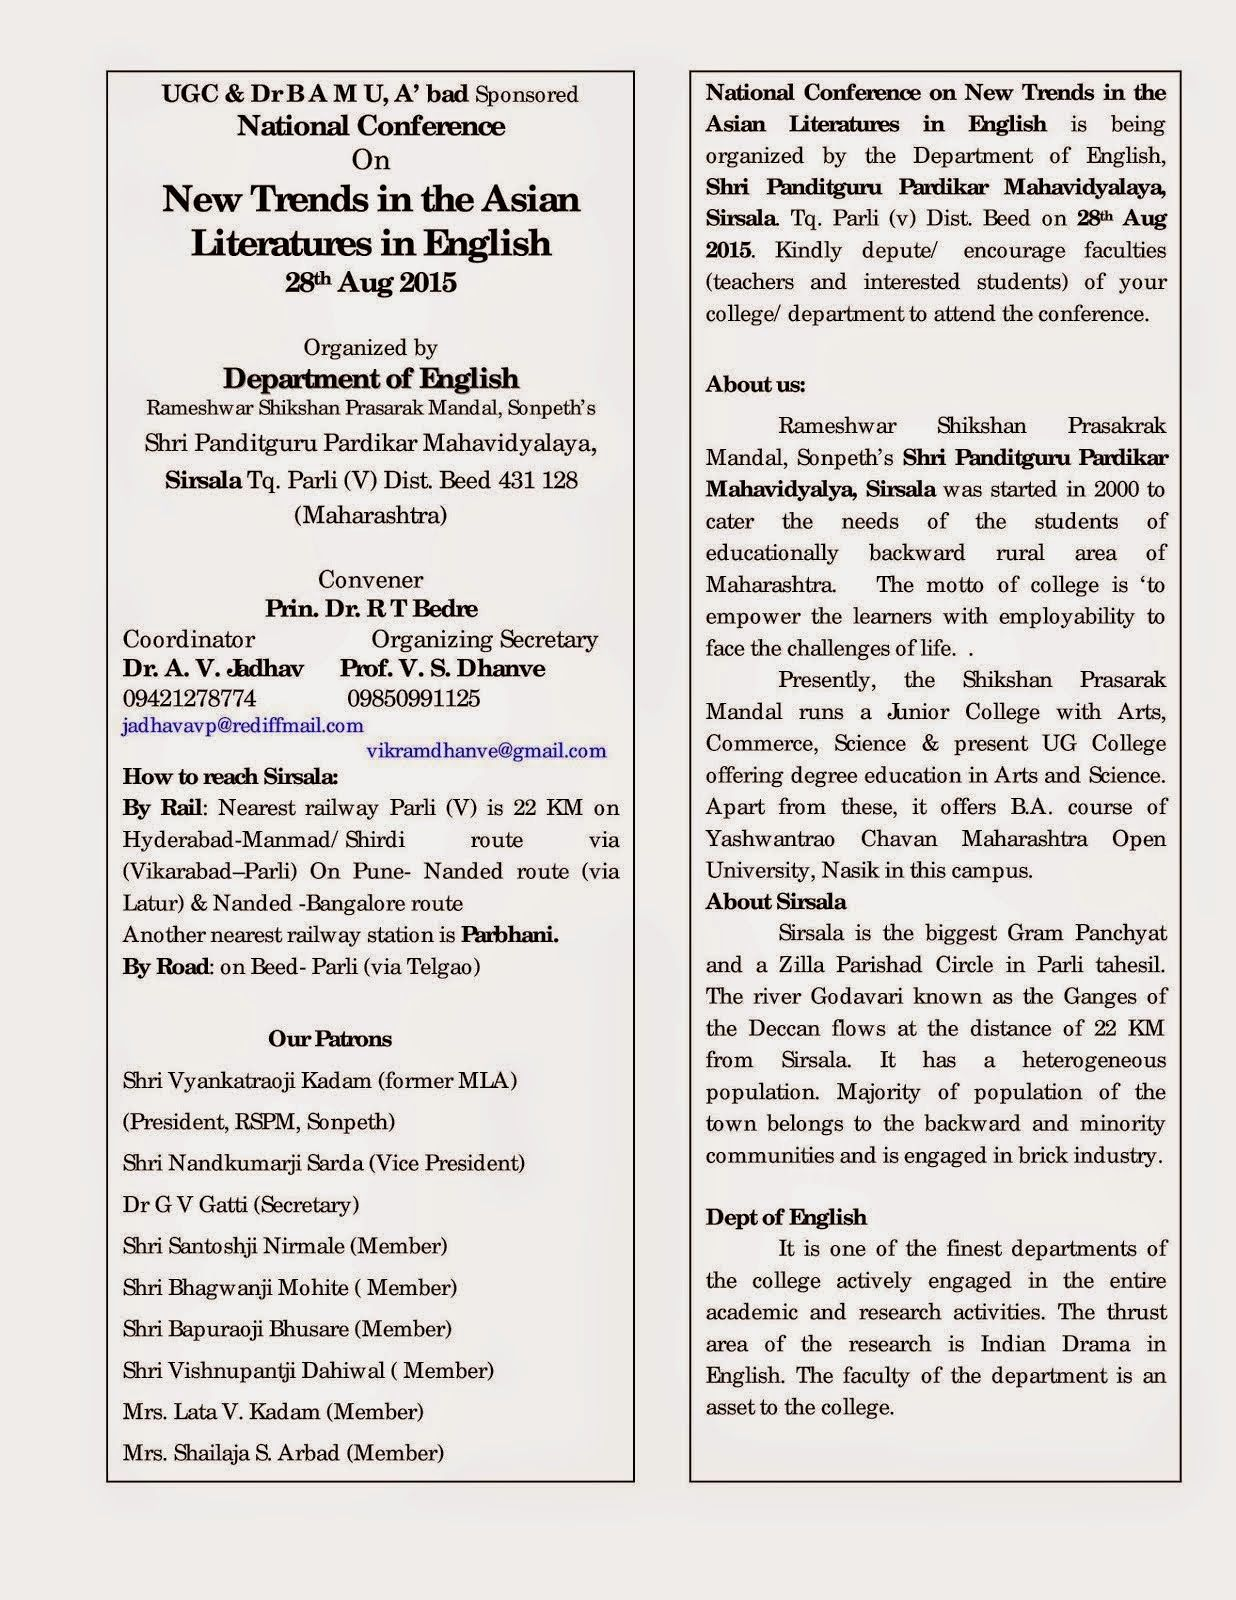 ugc netsetslet english literature national conference on